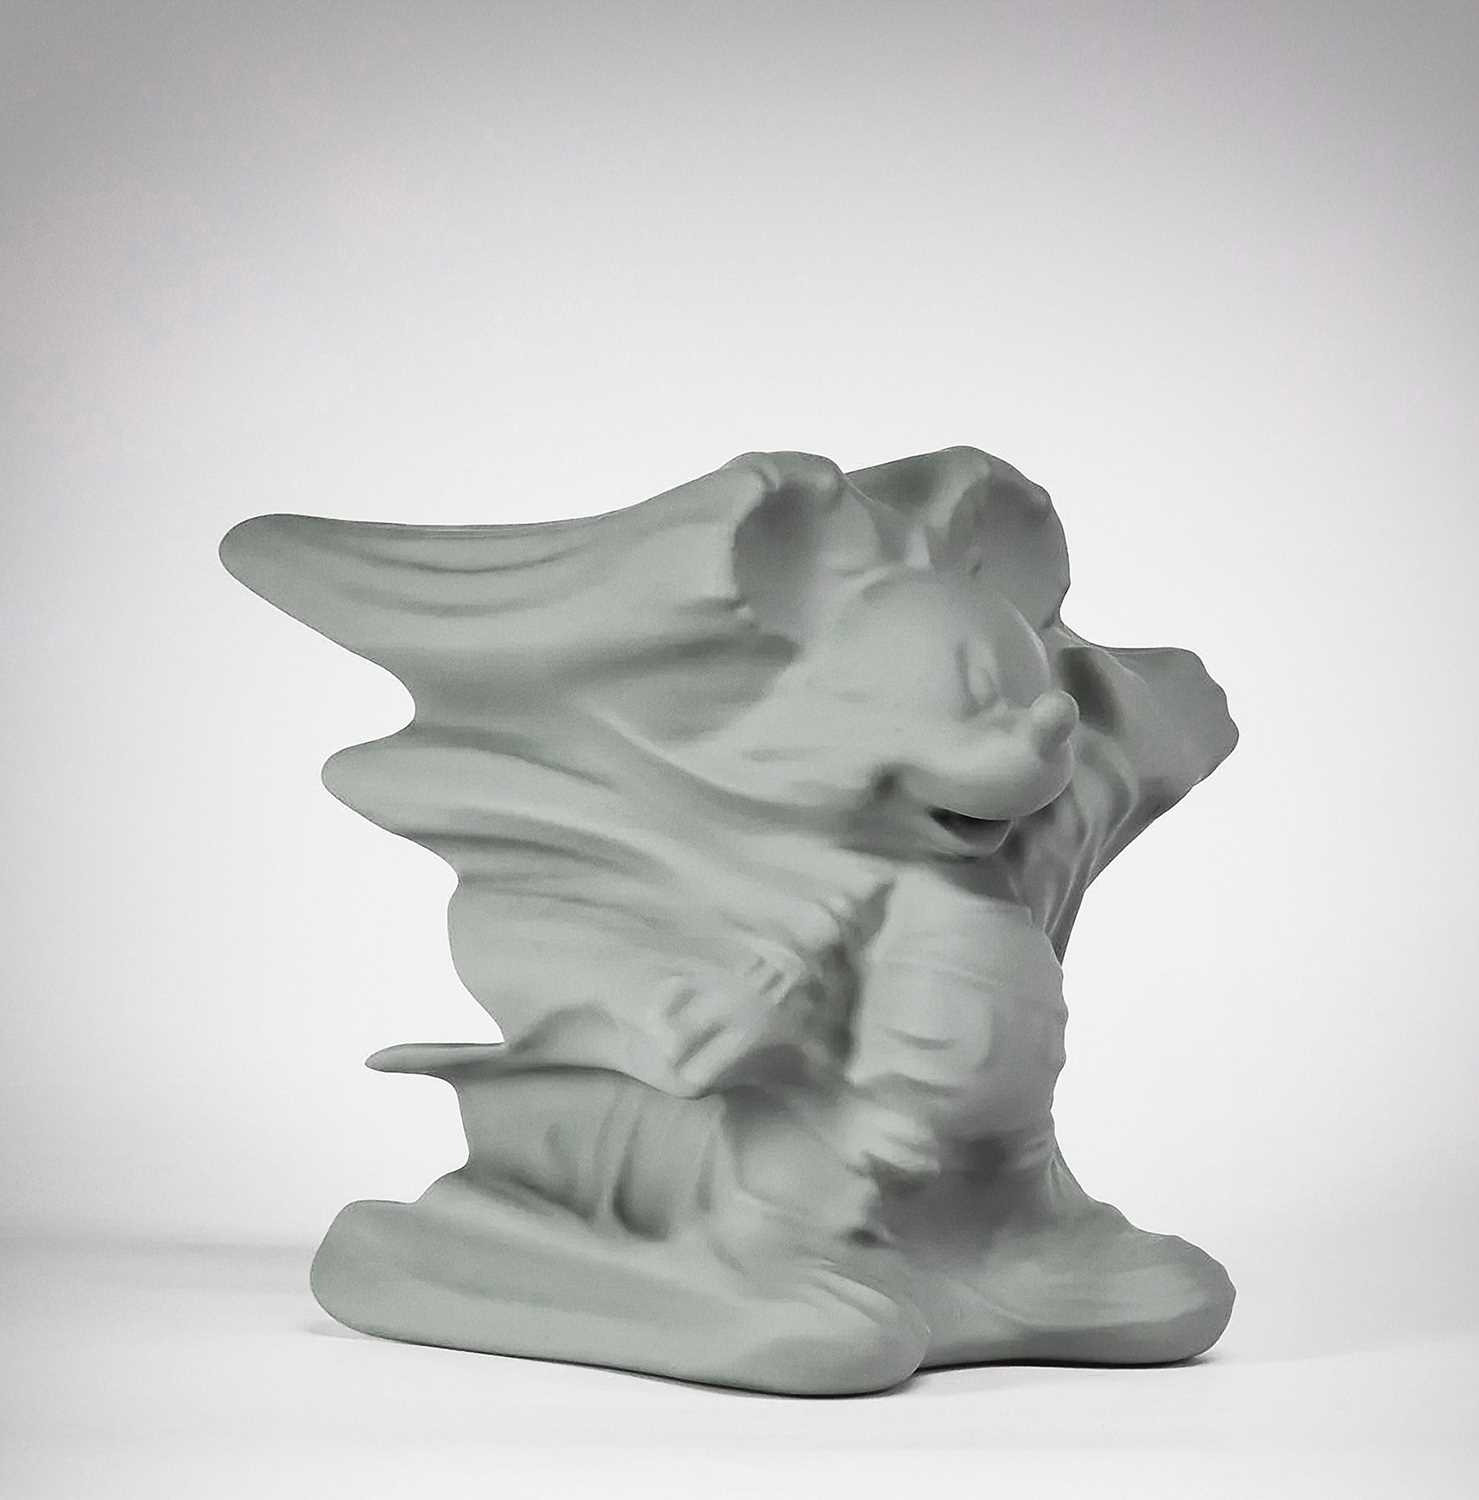 Lot 24-Daniel Arsham (American 1980-), 'Hollow Mickey (Grey)', 2019